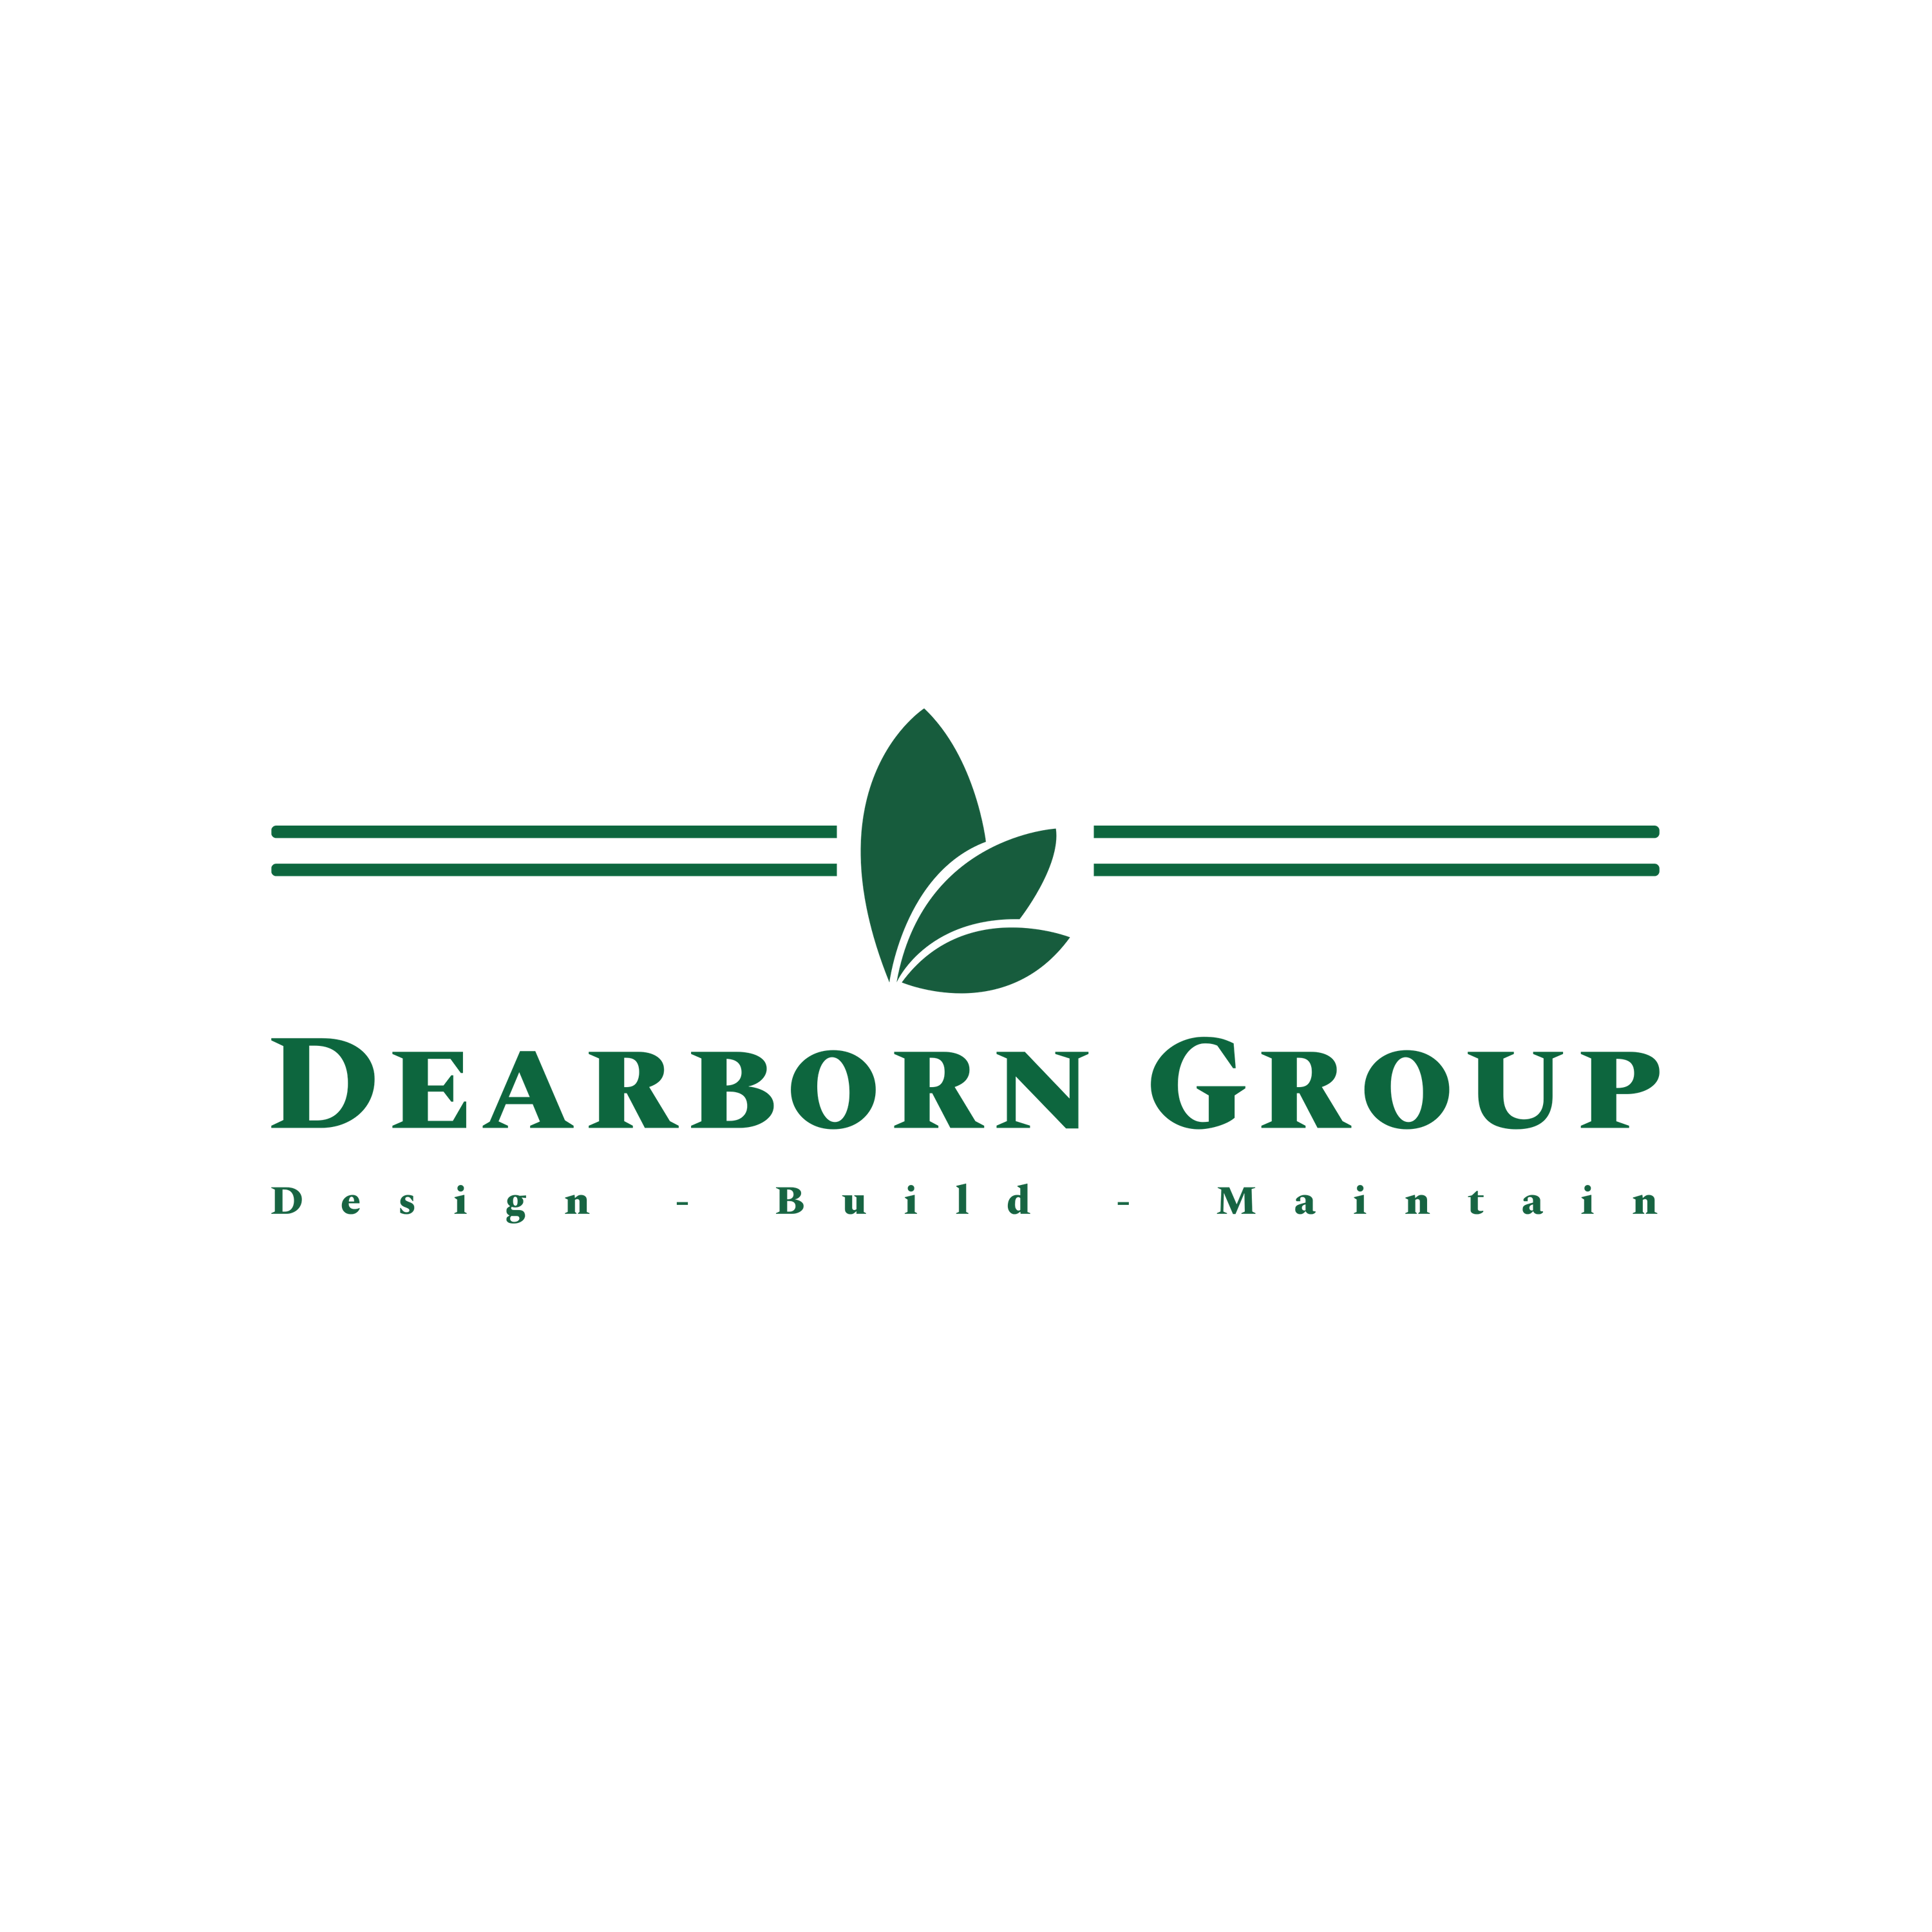 Dearborn Group